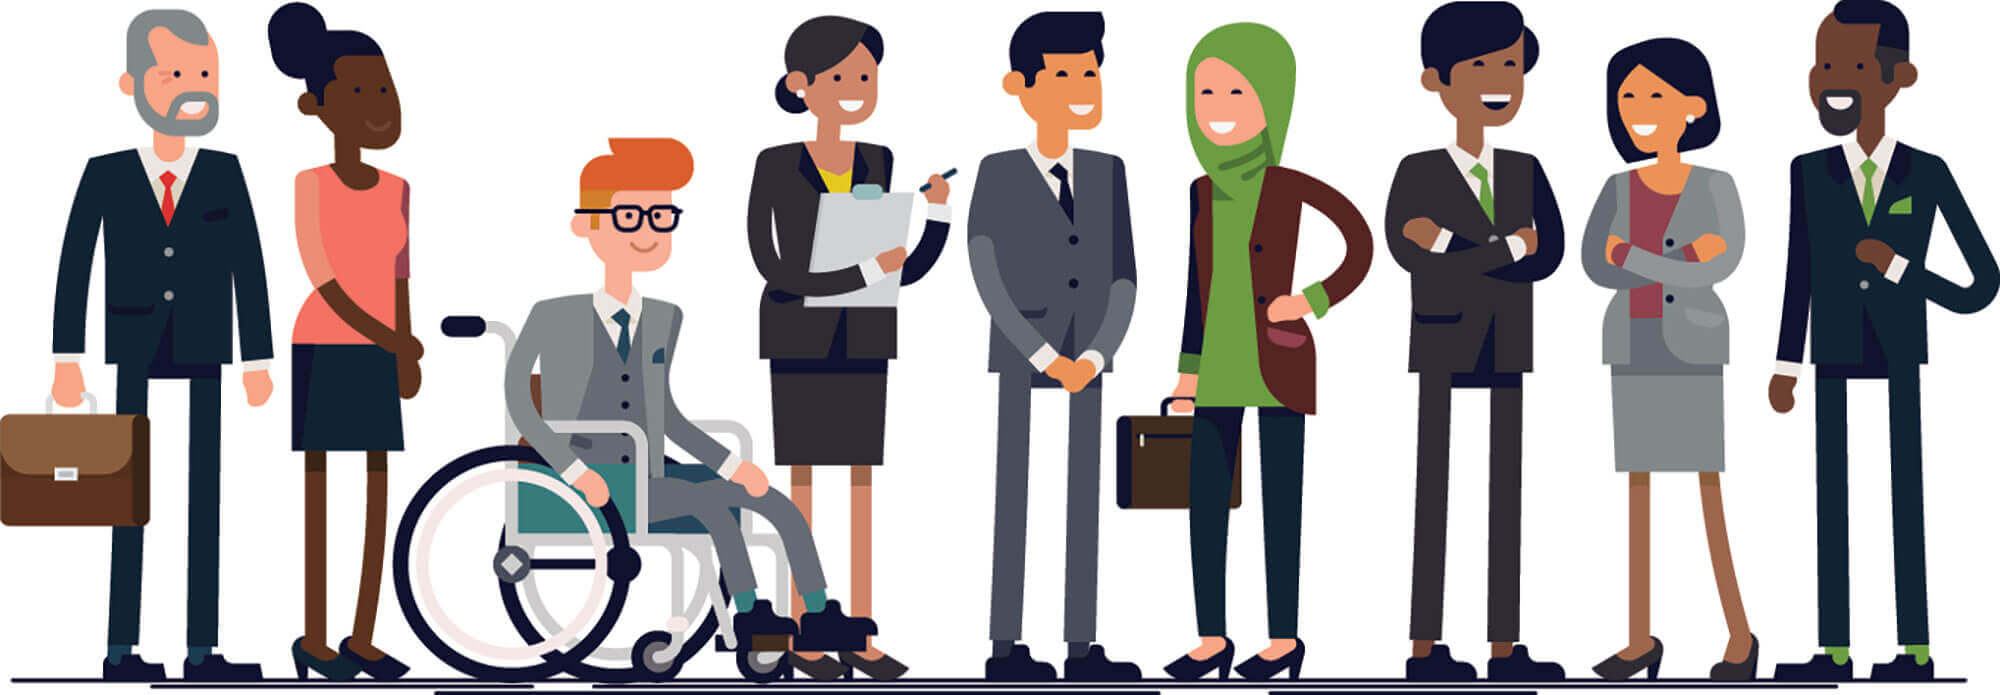 7 tips to manage diversity in the workplace | peopleHum